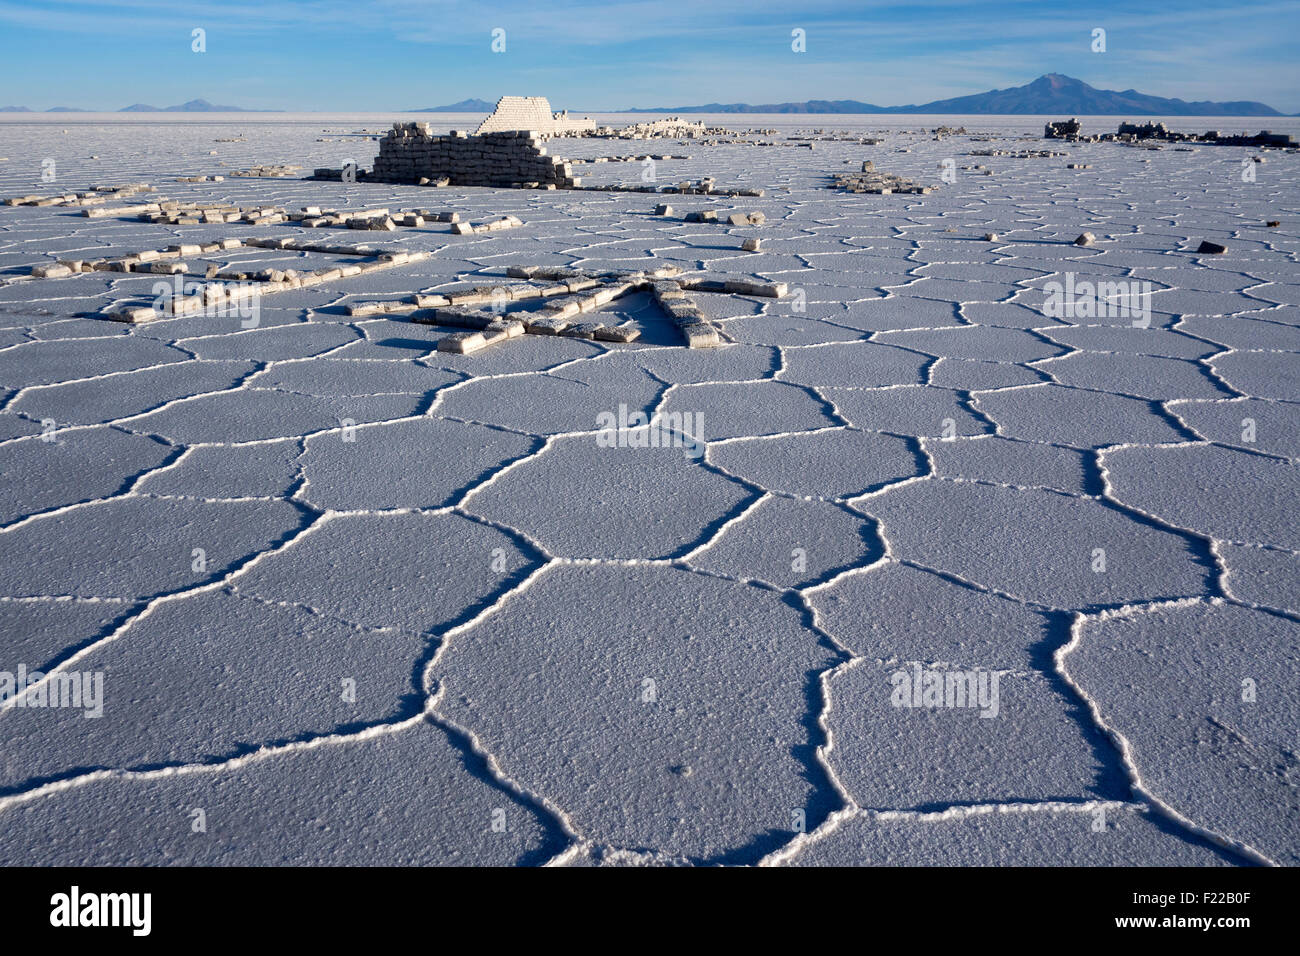 Salt hexagons. Salar de Uyuni. Bolivia - Stock Image